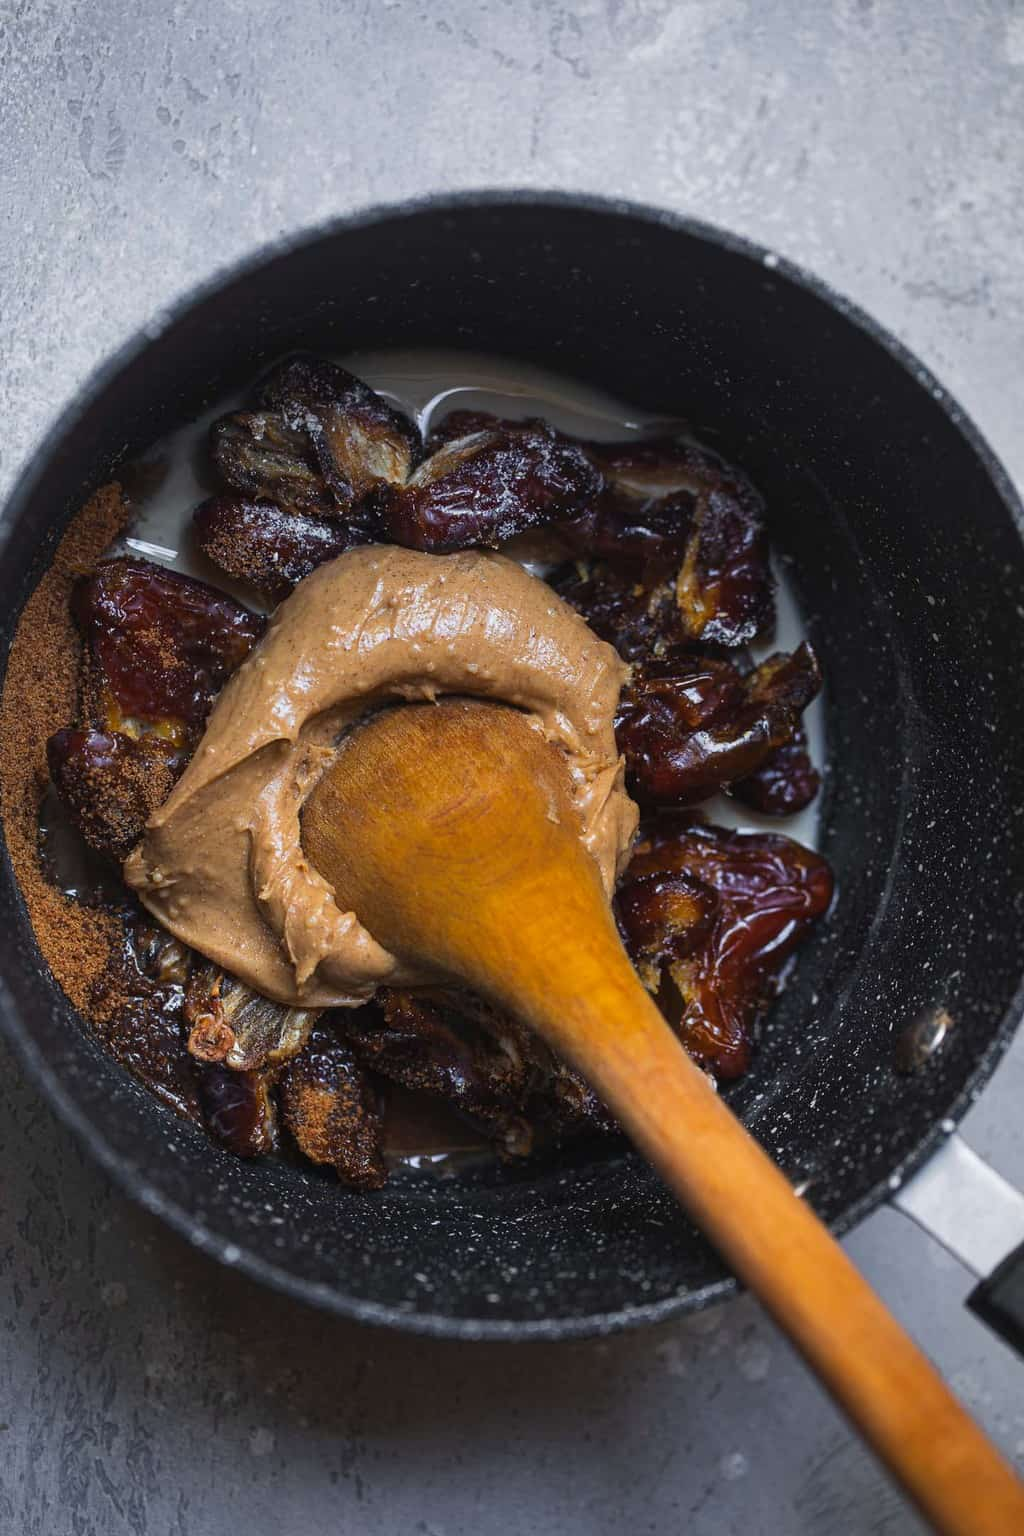 Vegan salted caramel ingredients in a saucepan